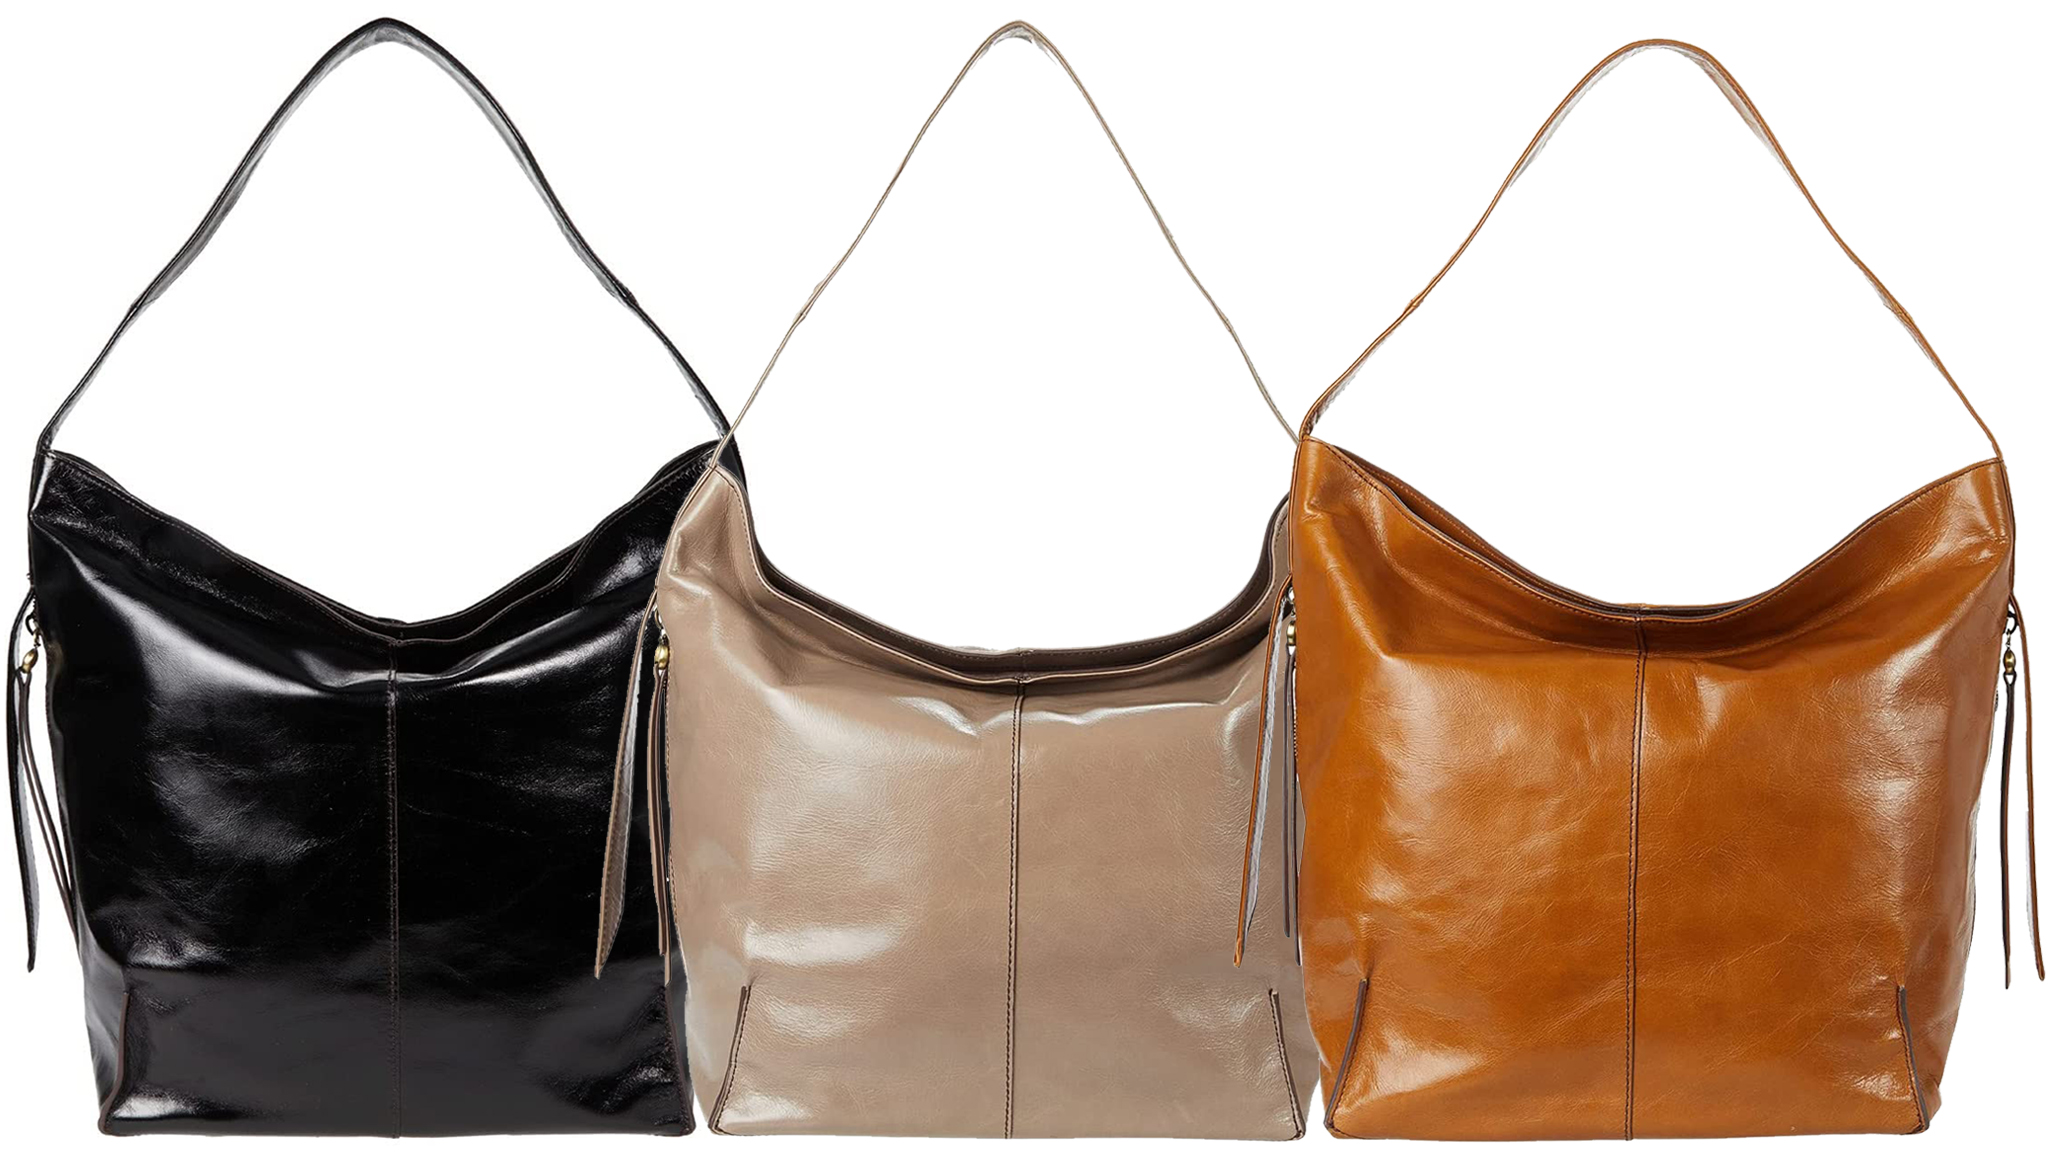 Made from the brand's signature vintage hide leather, the Stand hobo bag features a carrying handle and fringe detail at the sides